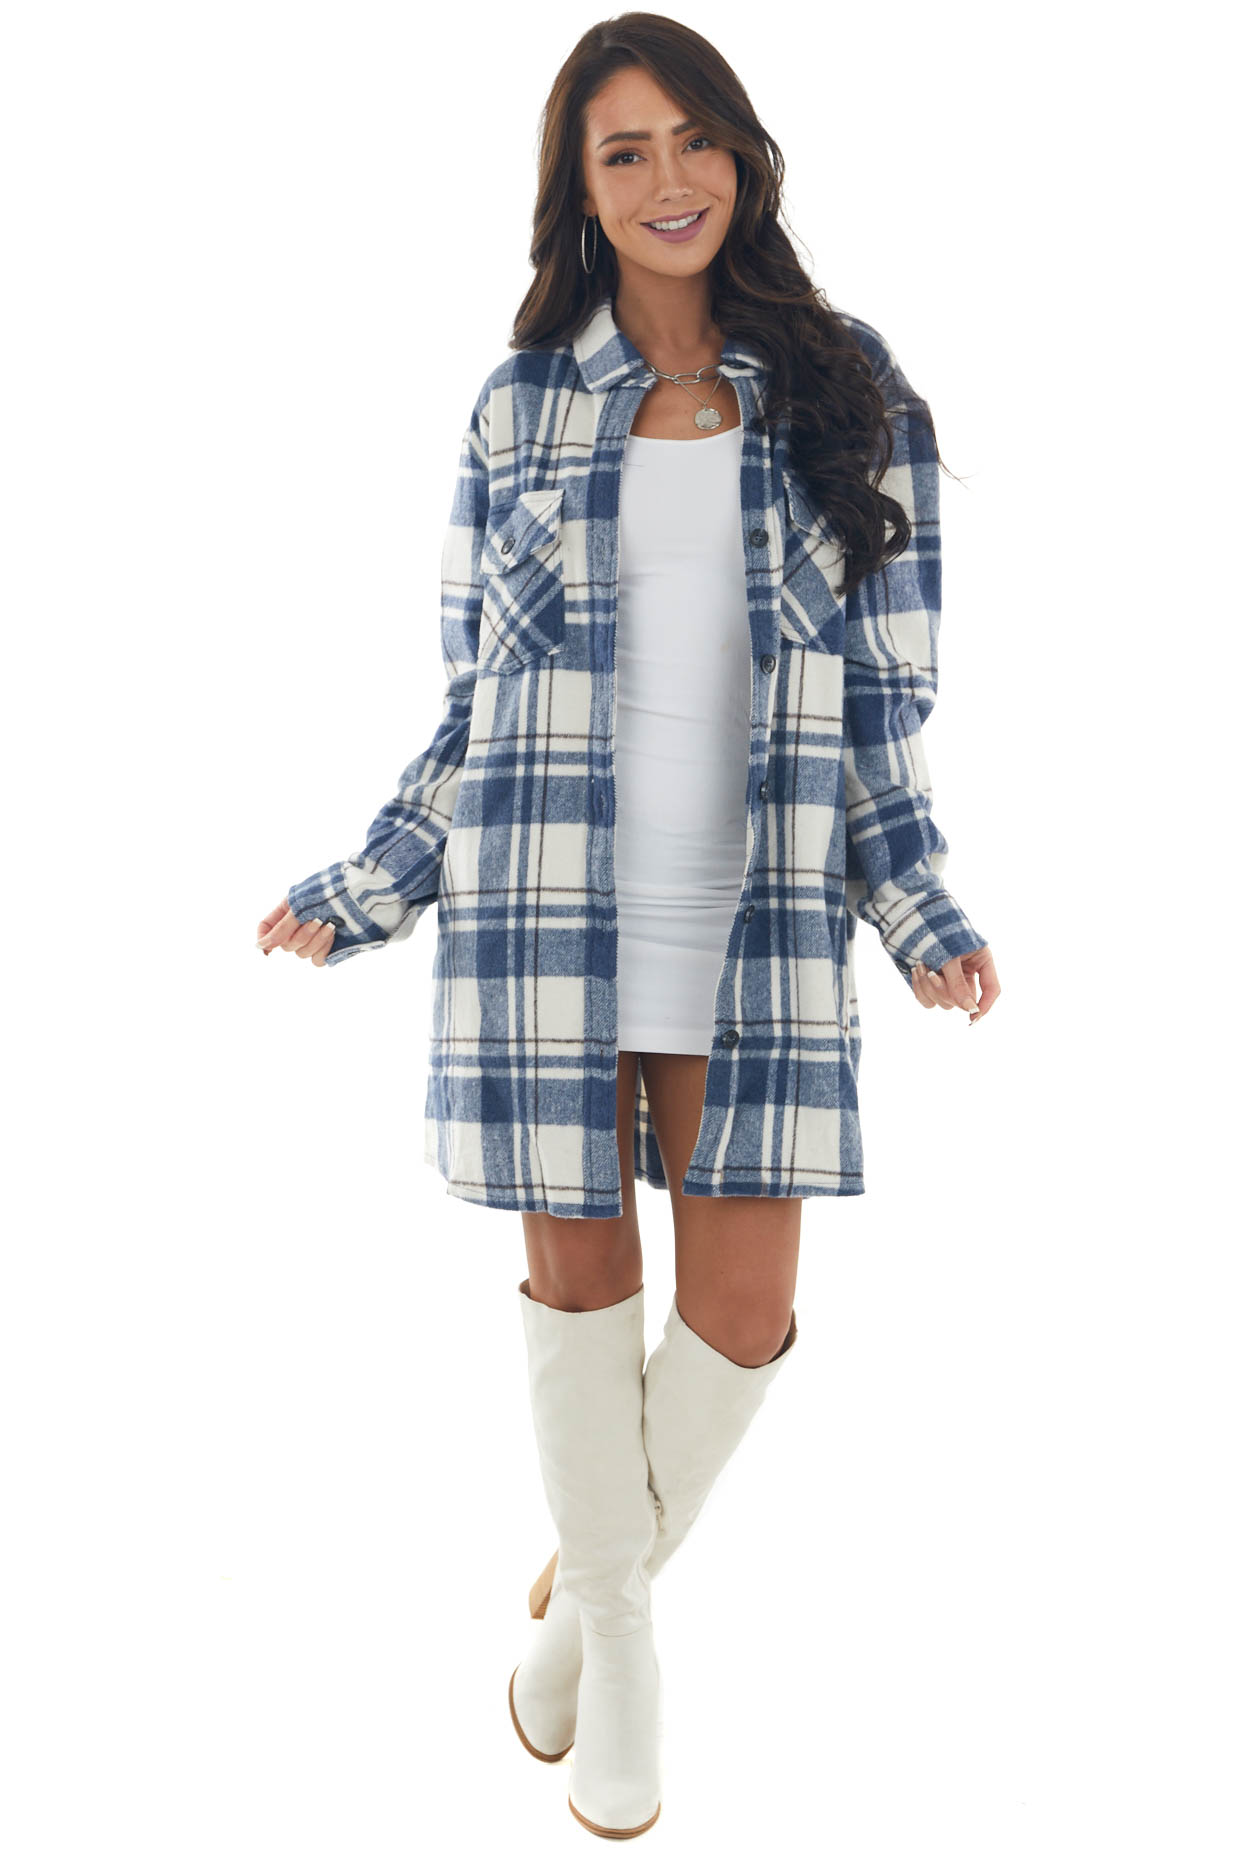 Faded Navy Plaid Button Up Shirt Jacket